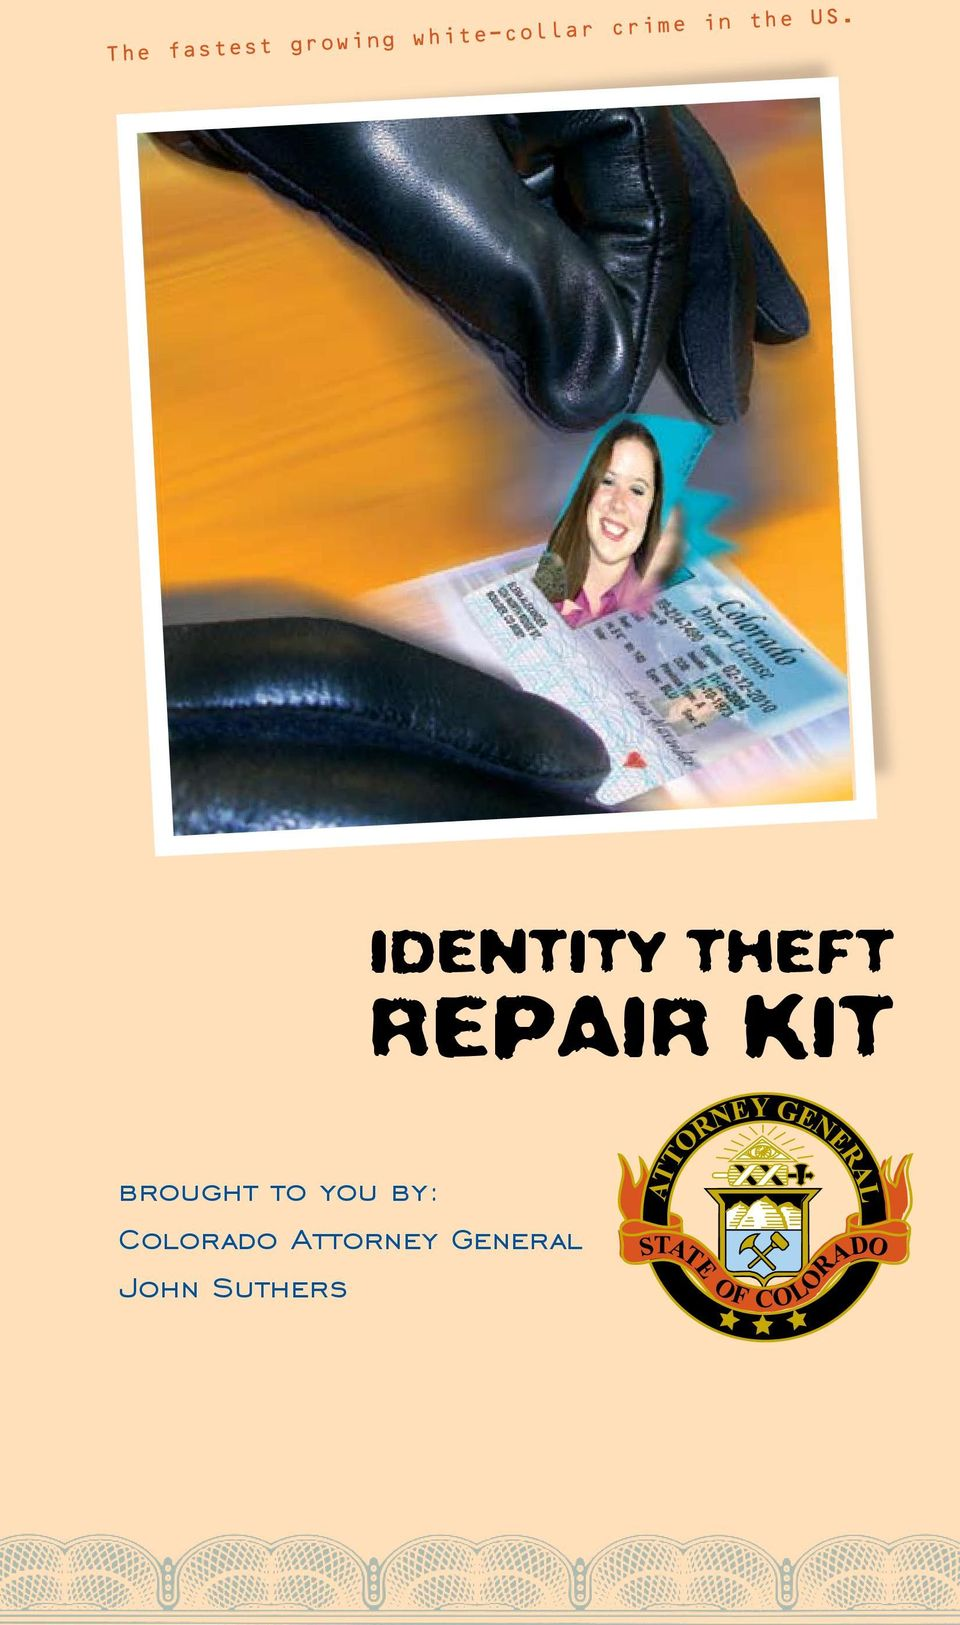 Identity theft REPAIR KIT brought